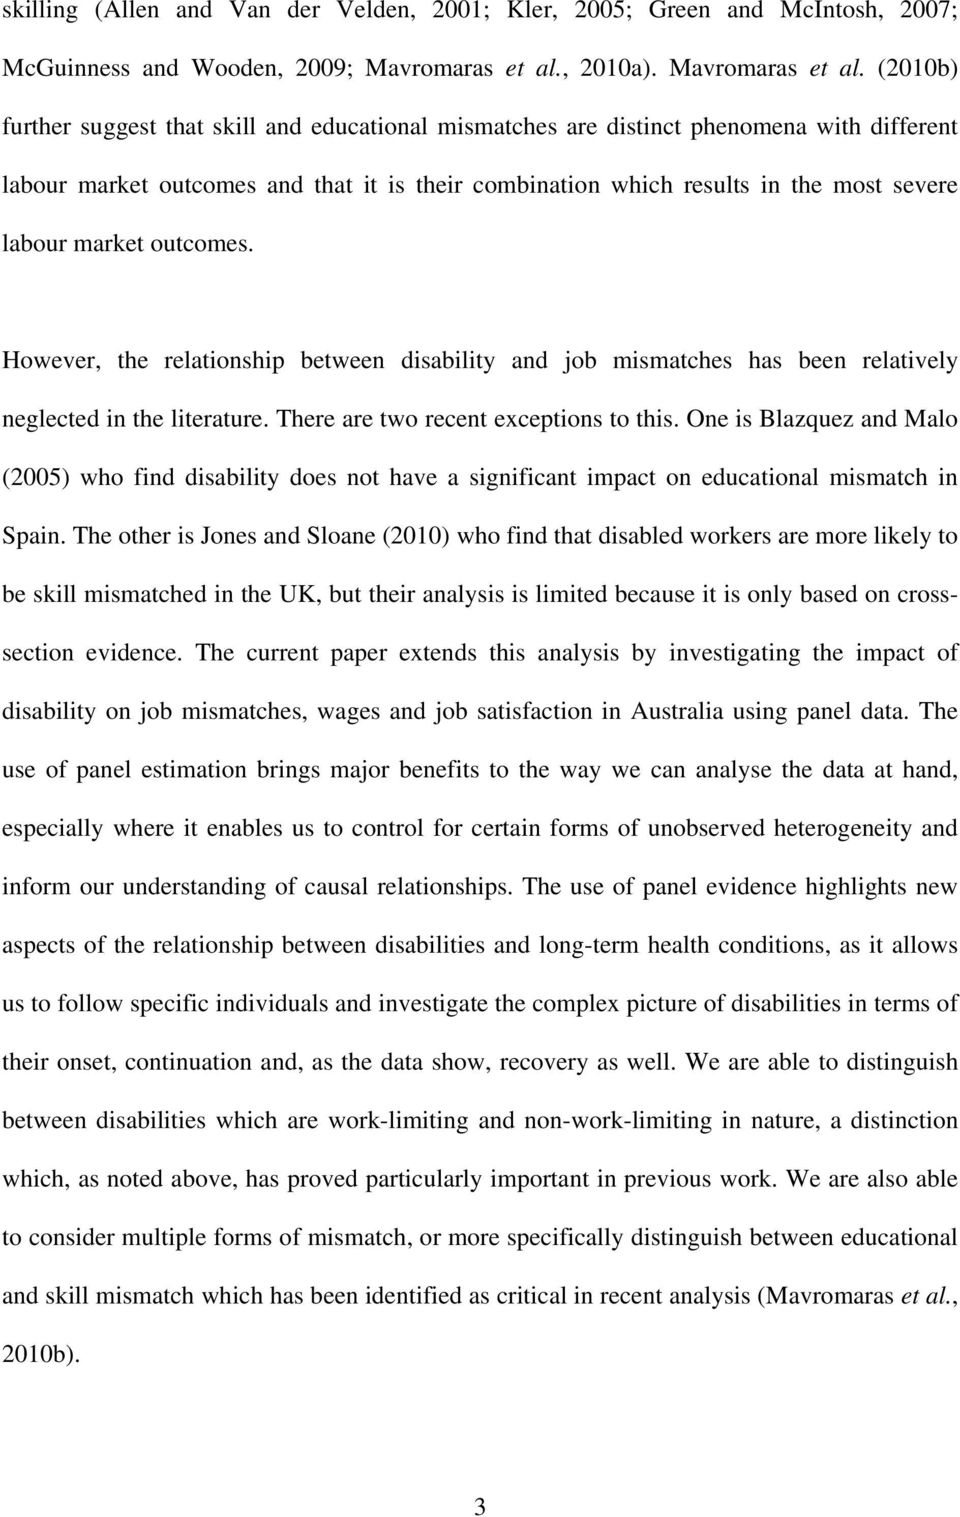 (2010b) further suggest that skill and educational mismatches are distinct phenomena with different labour market outcomes and that it is their combination which results in the most severe labour